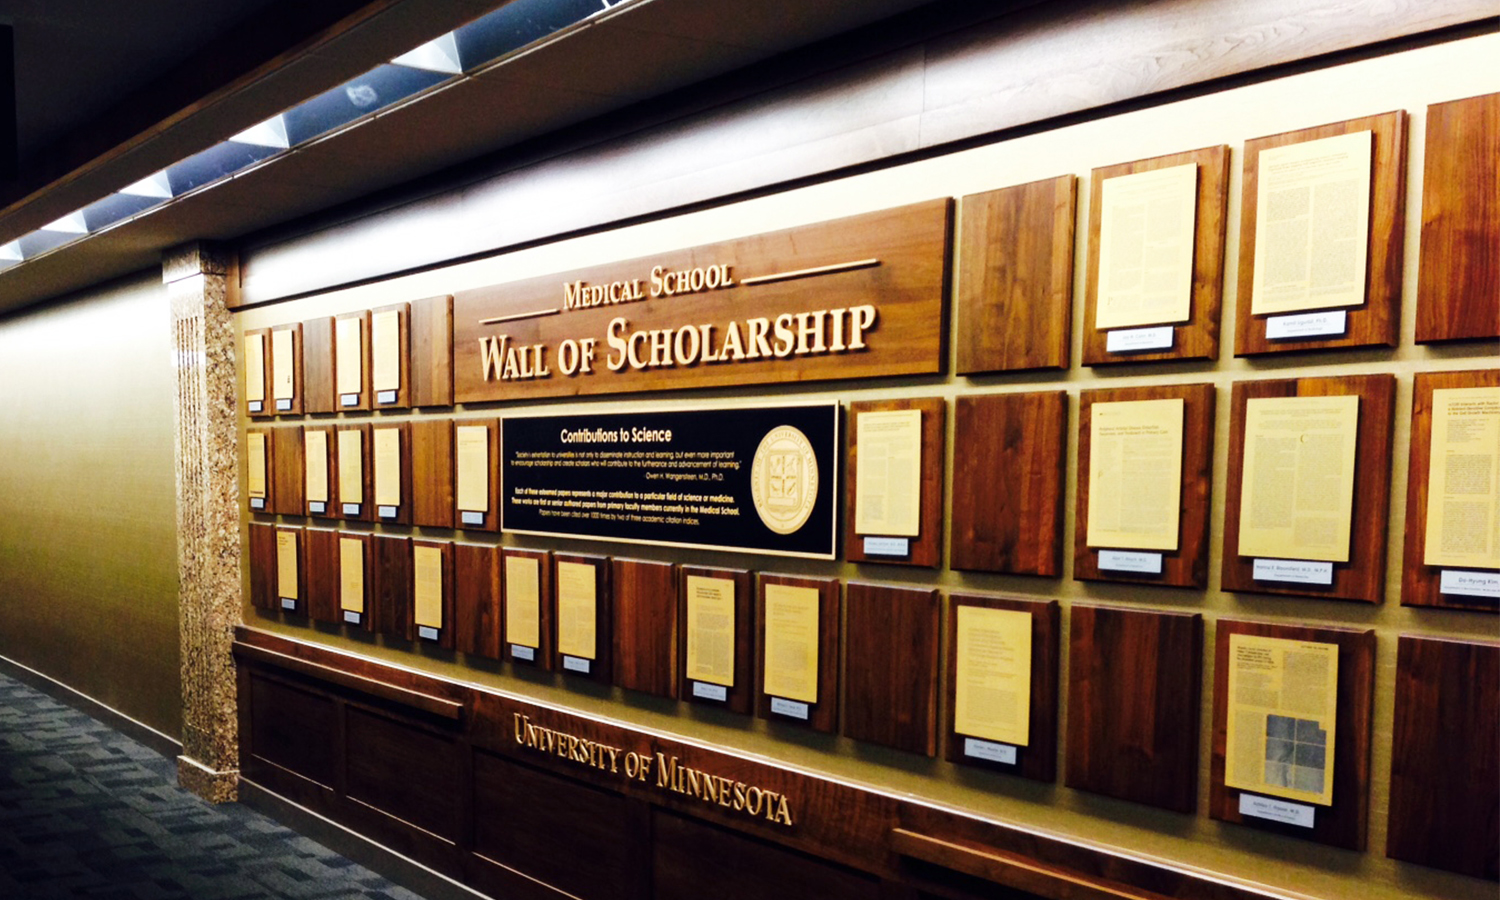 Wall of Scholarship